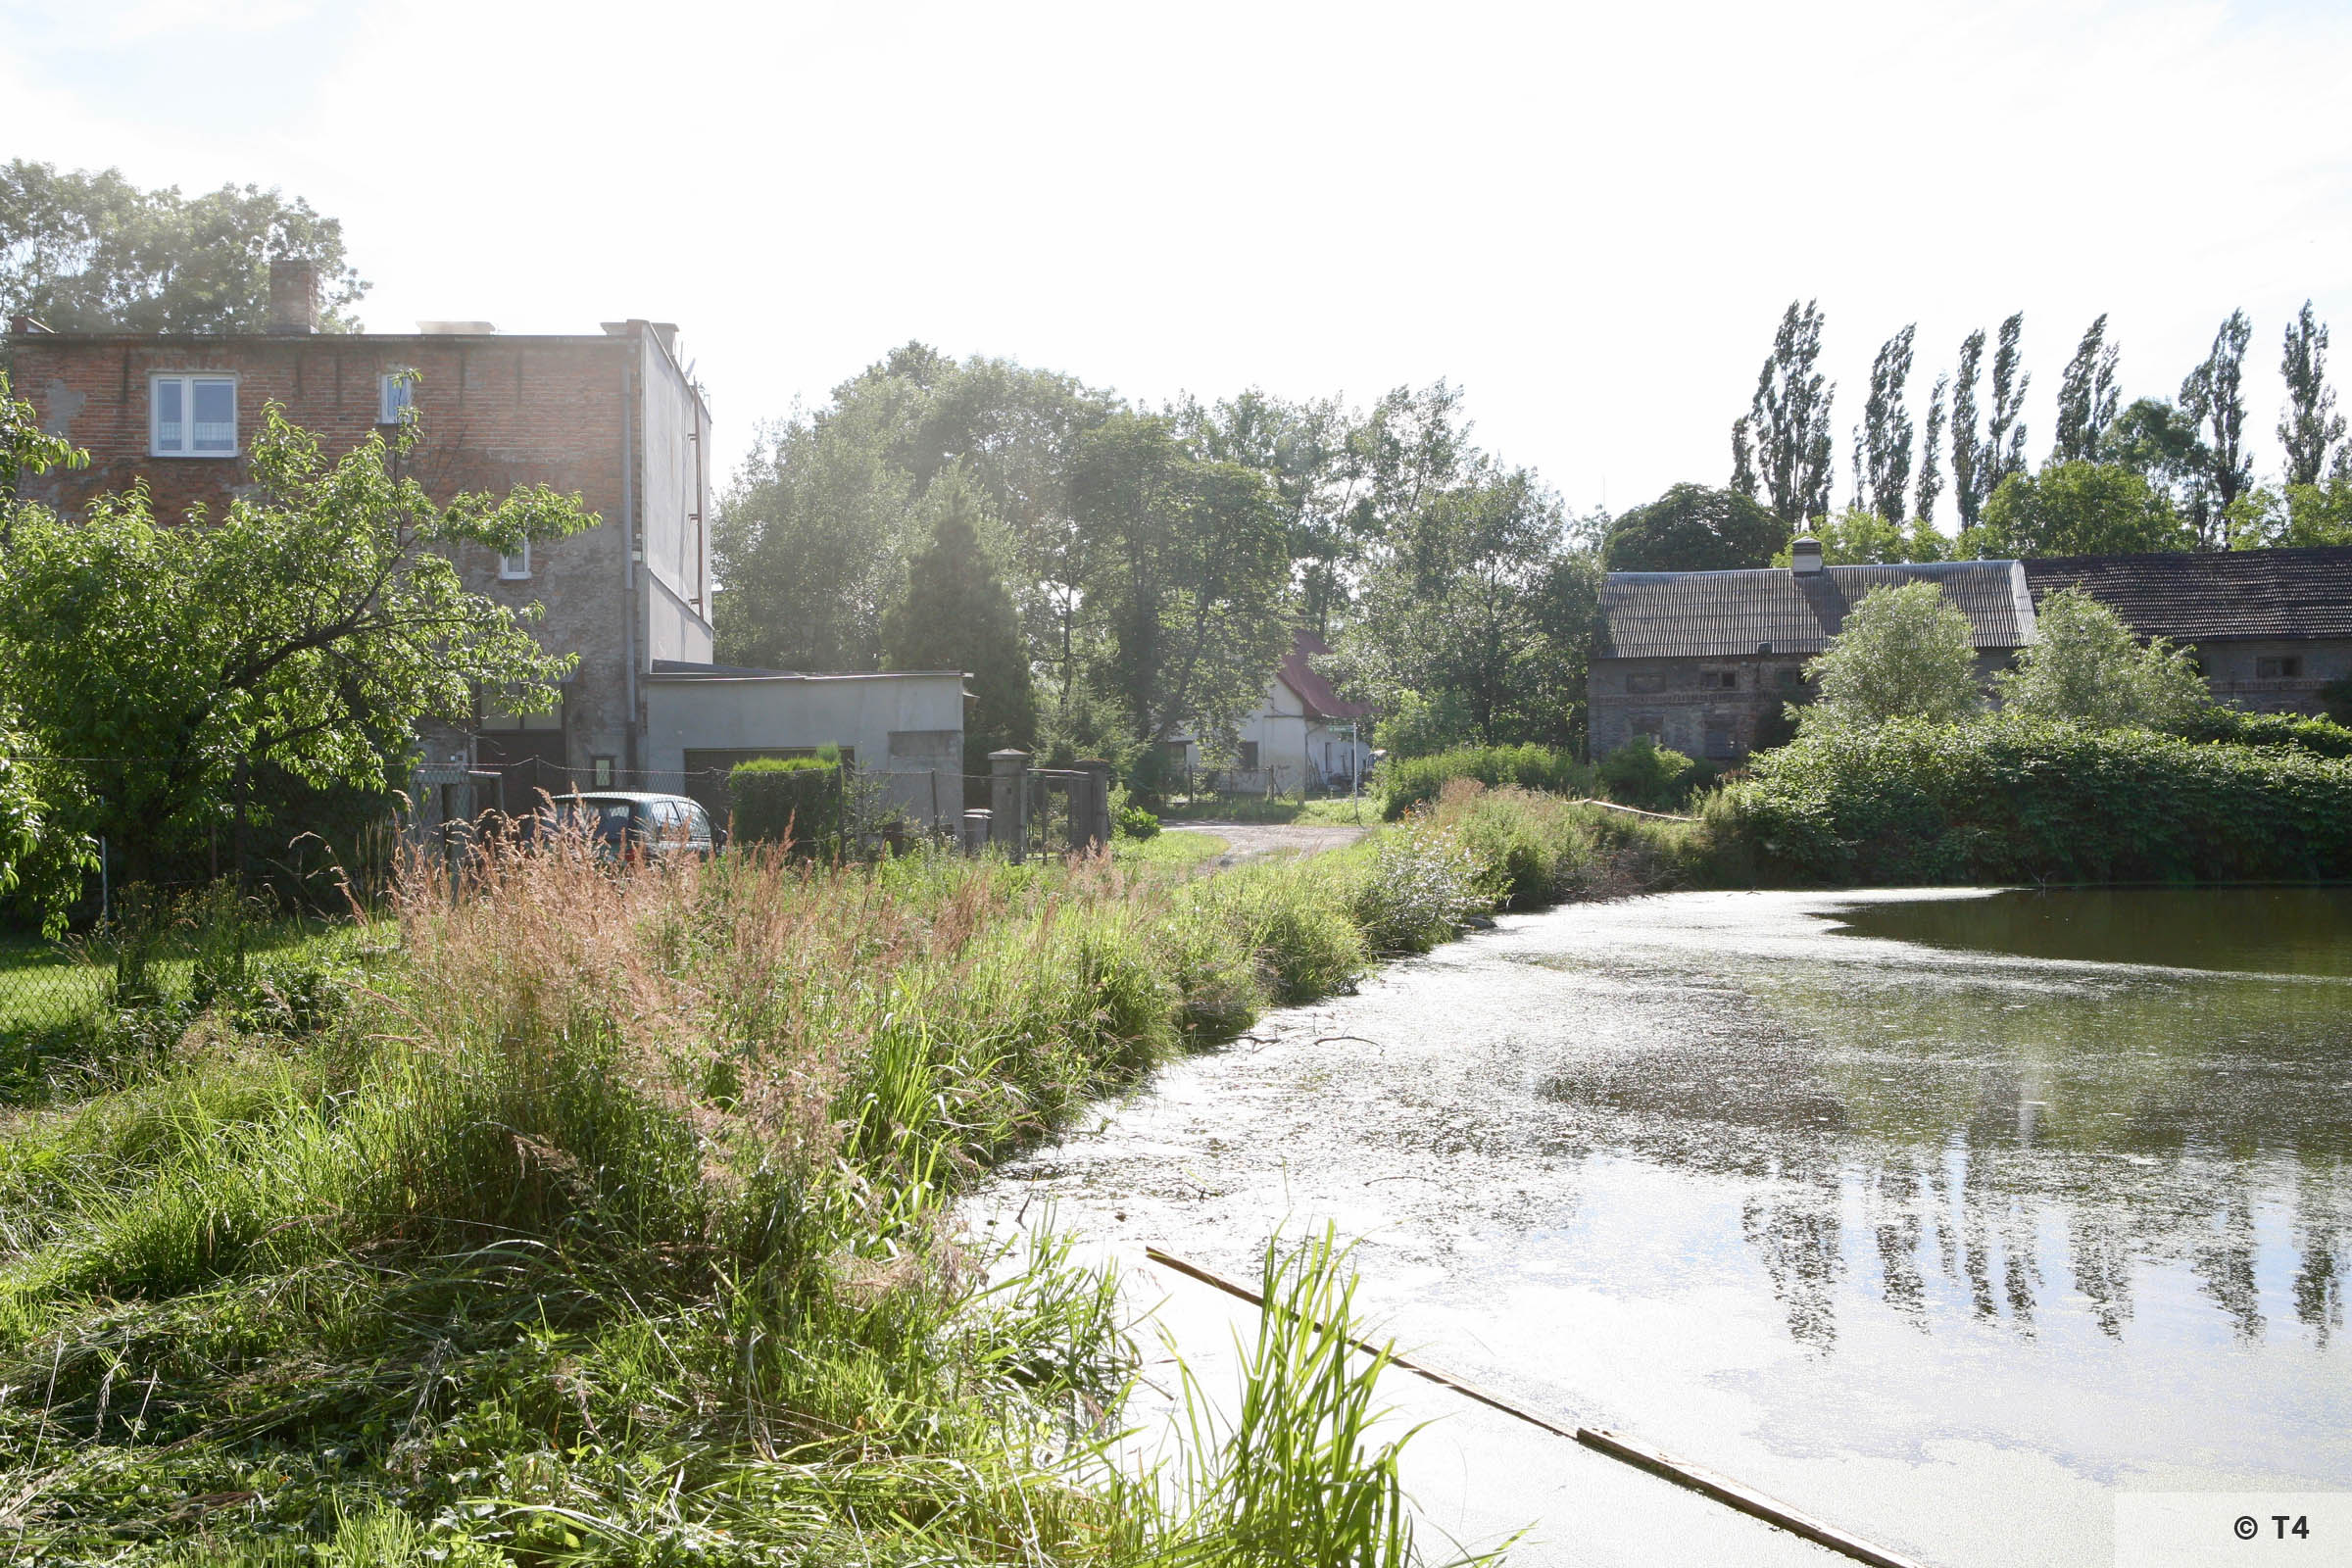 Looking towards the area of the former sub camp. Residential buildings on the left. 2007 T4 9387